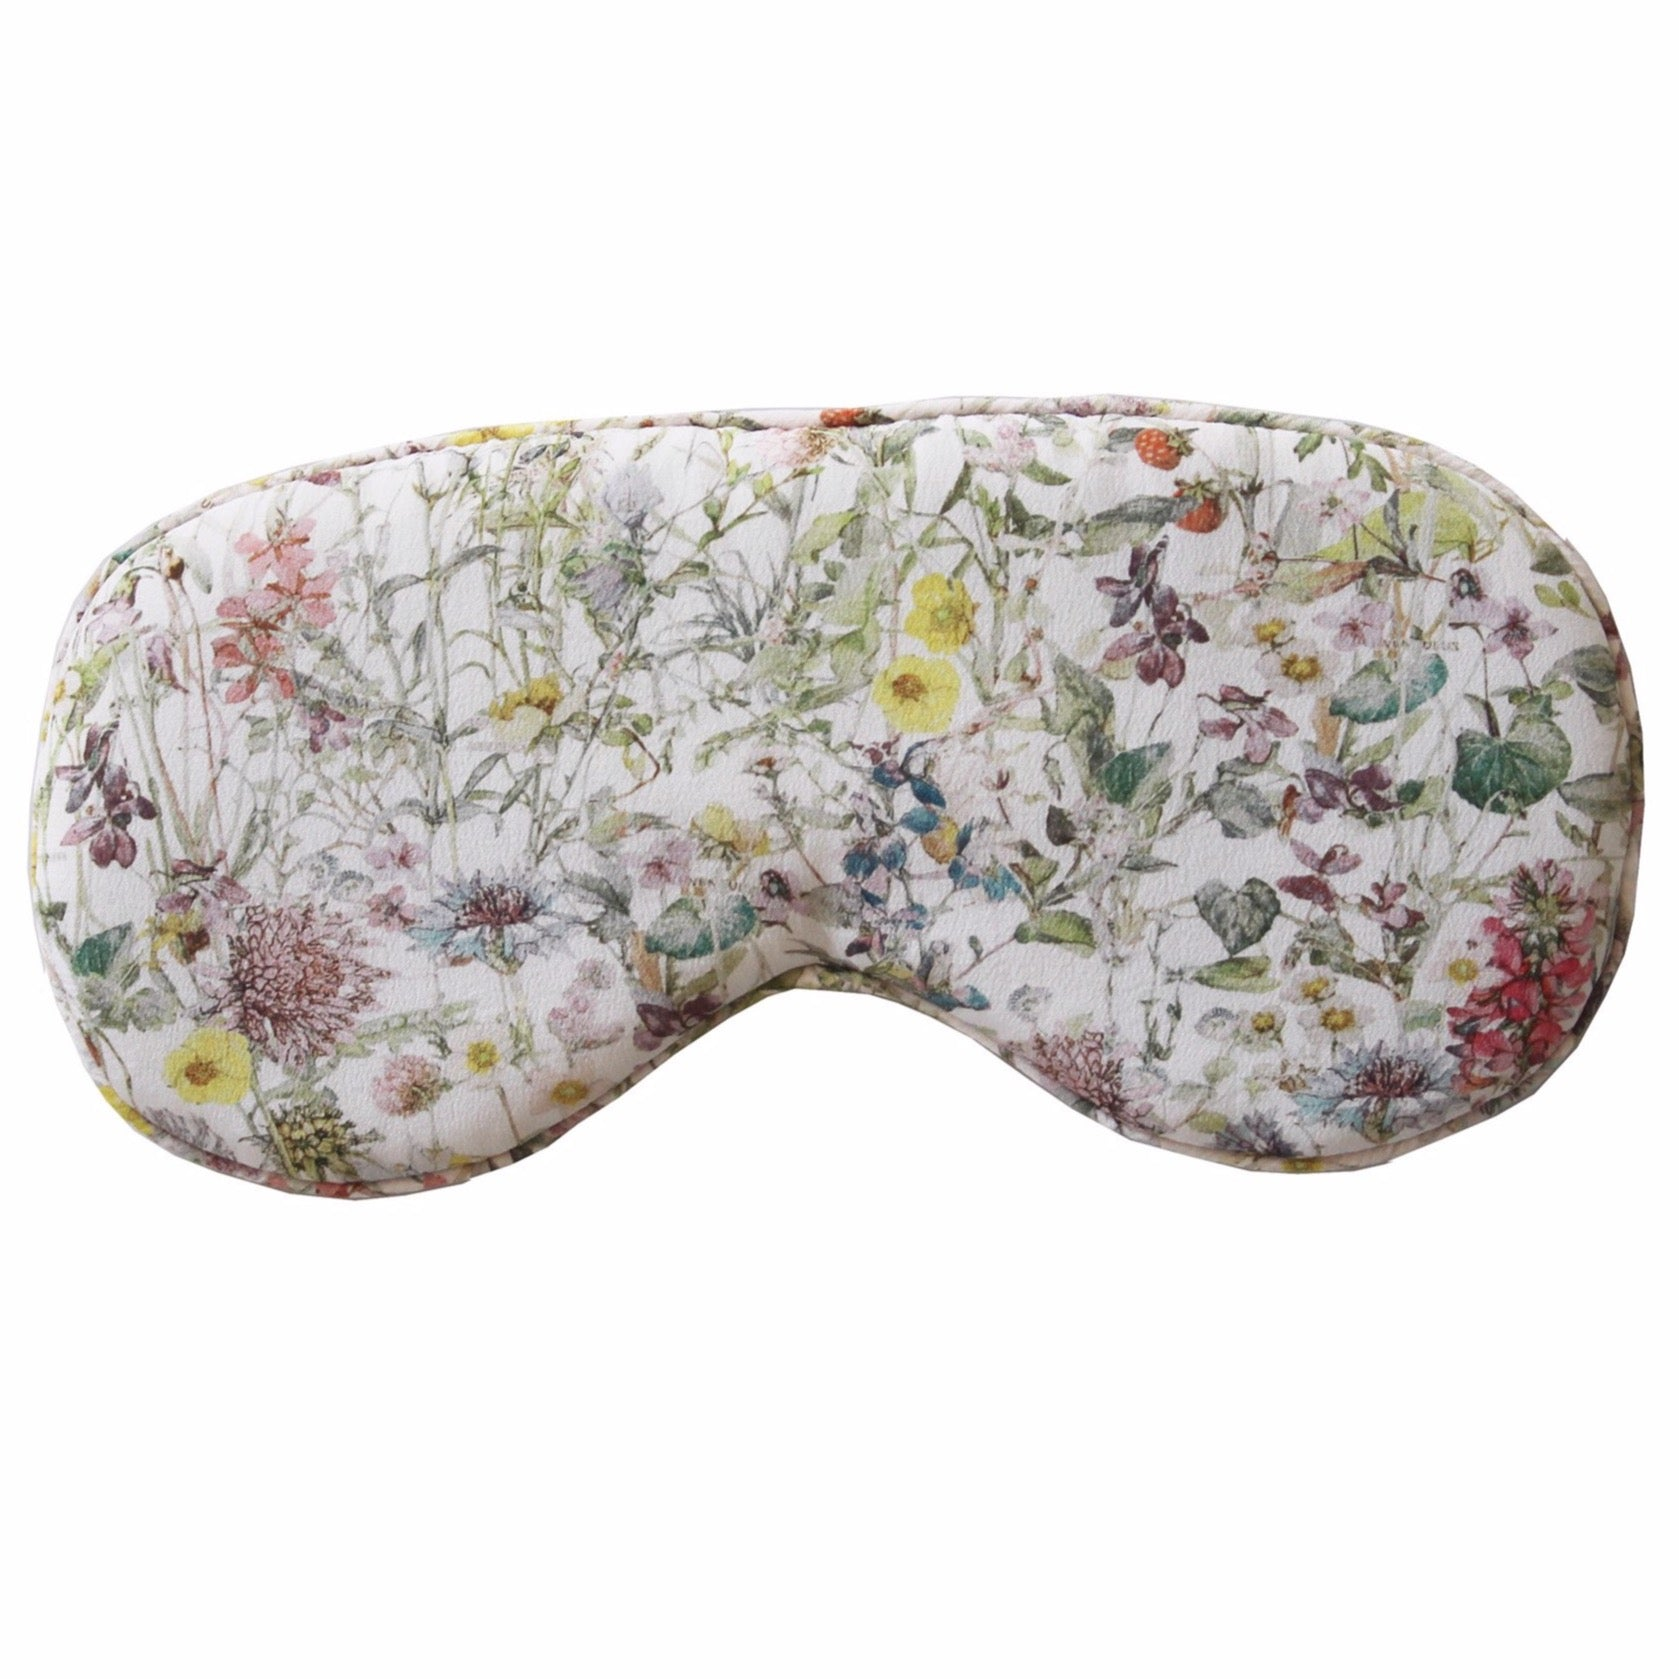 Hypnos Sleep Mask in Oyster Wildfowers Liberty Print